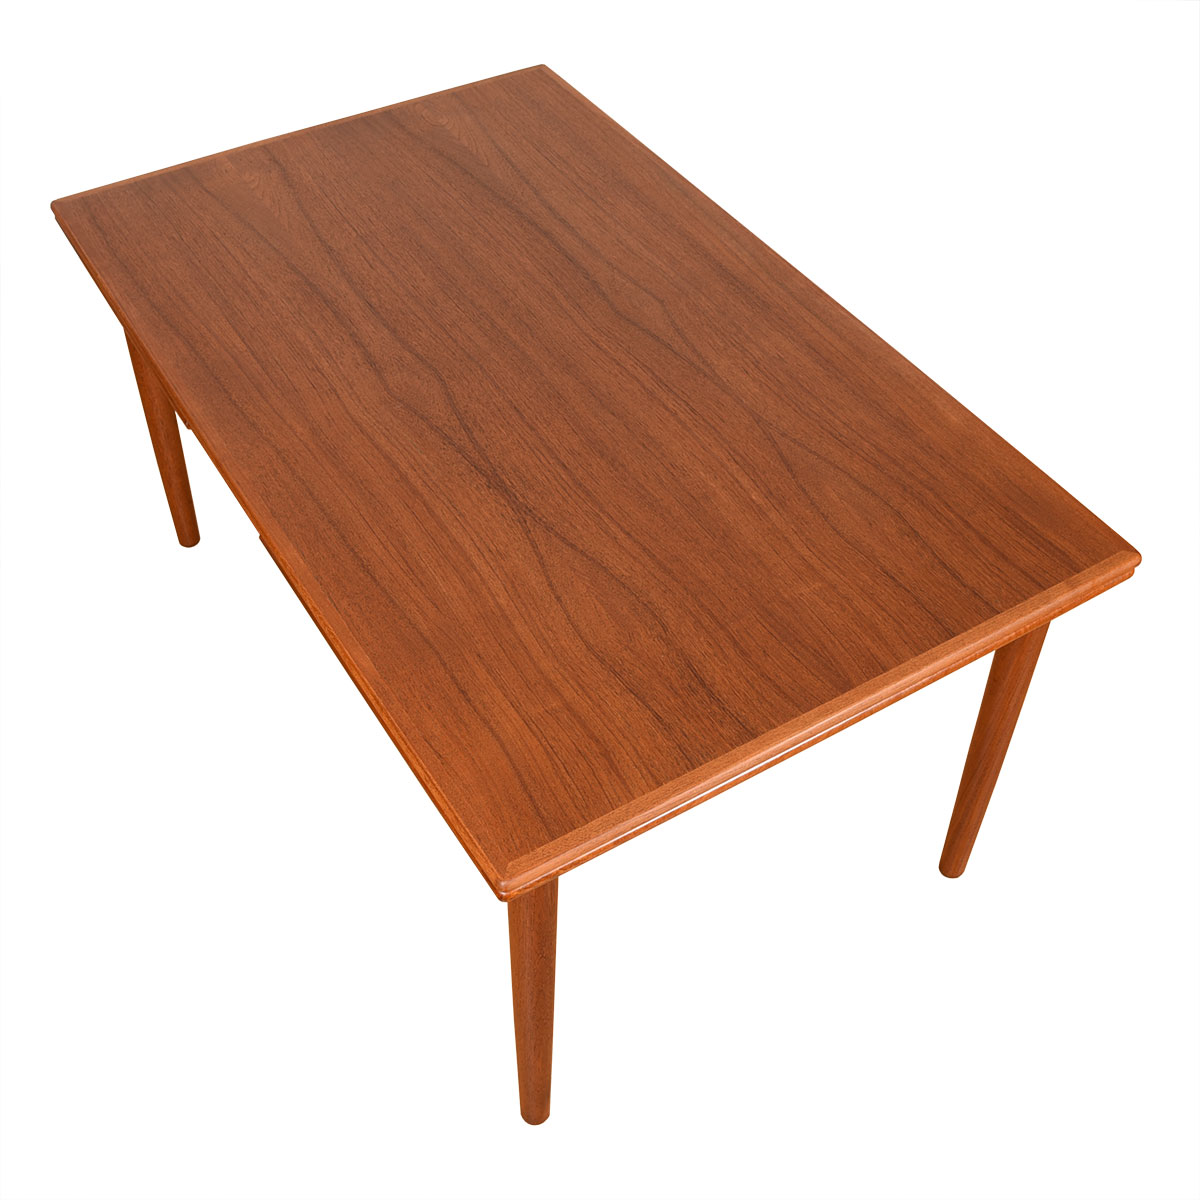 Danish Modern Teak Mid Sized Expanding Dining Table